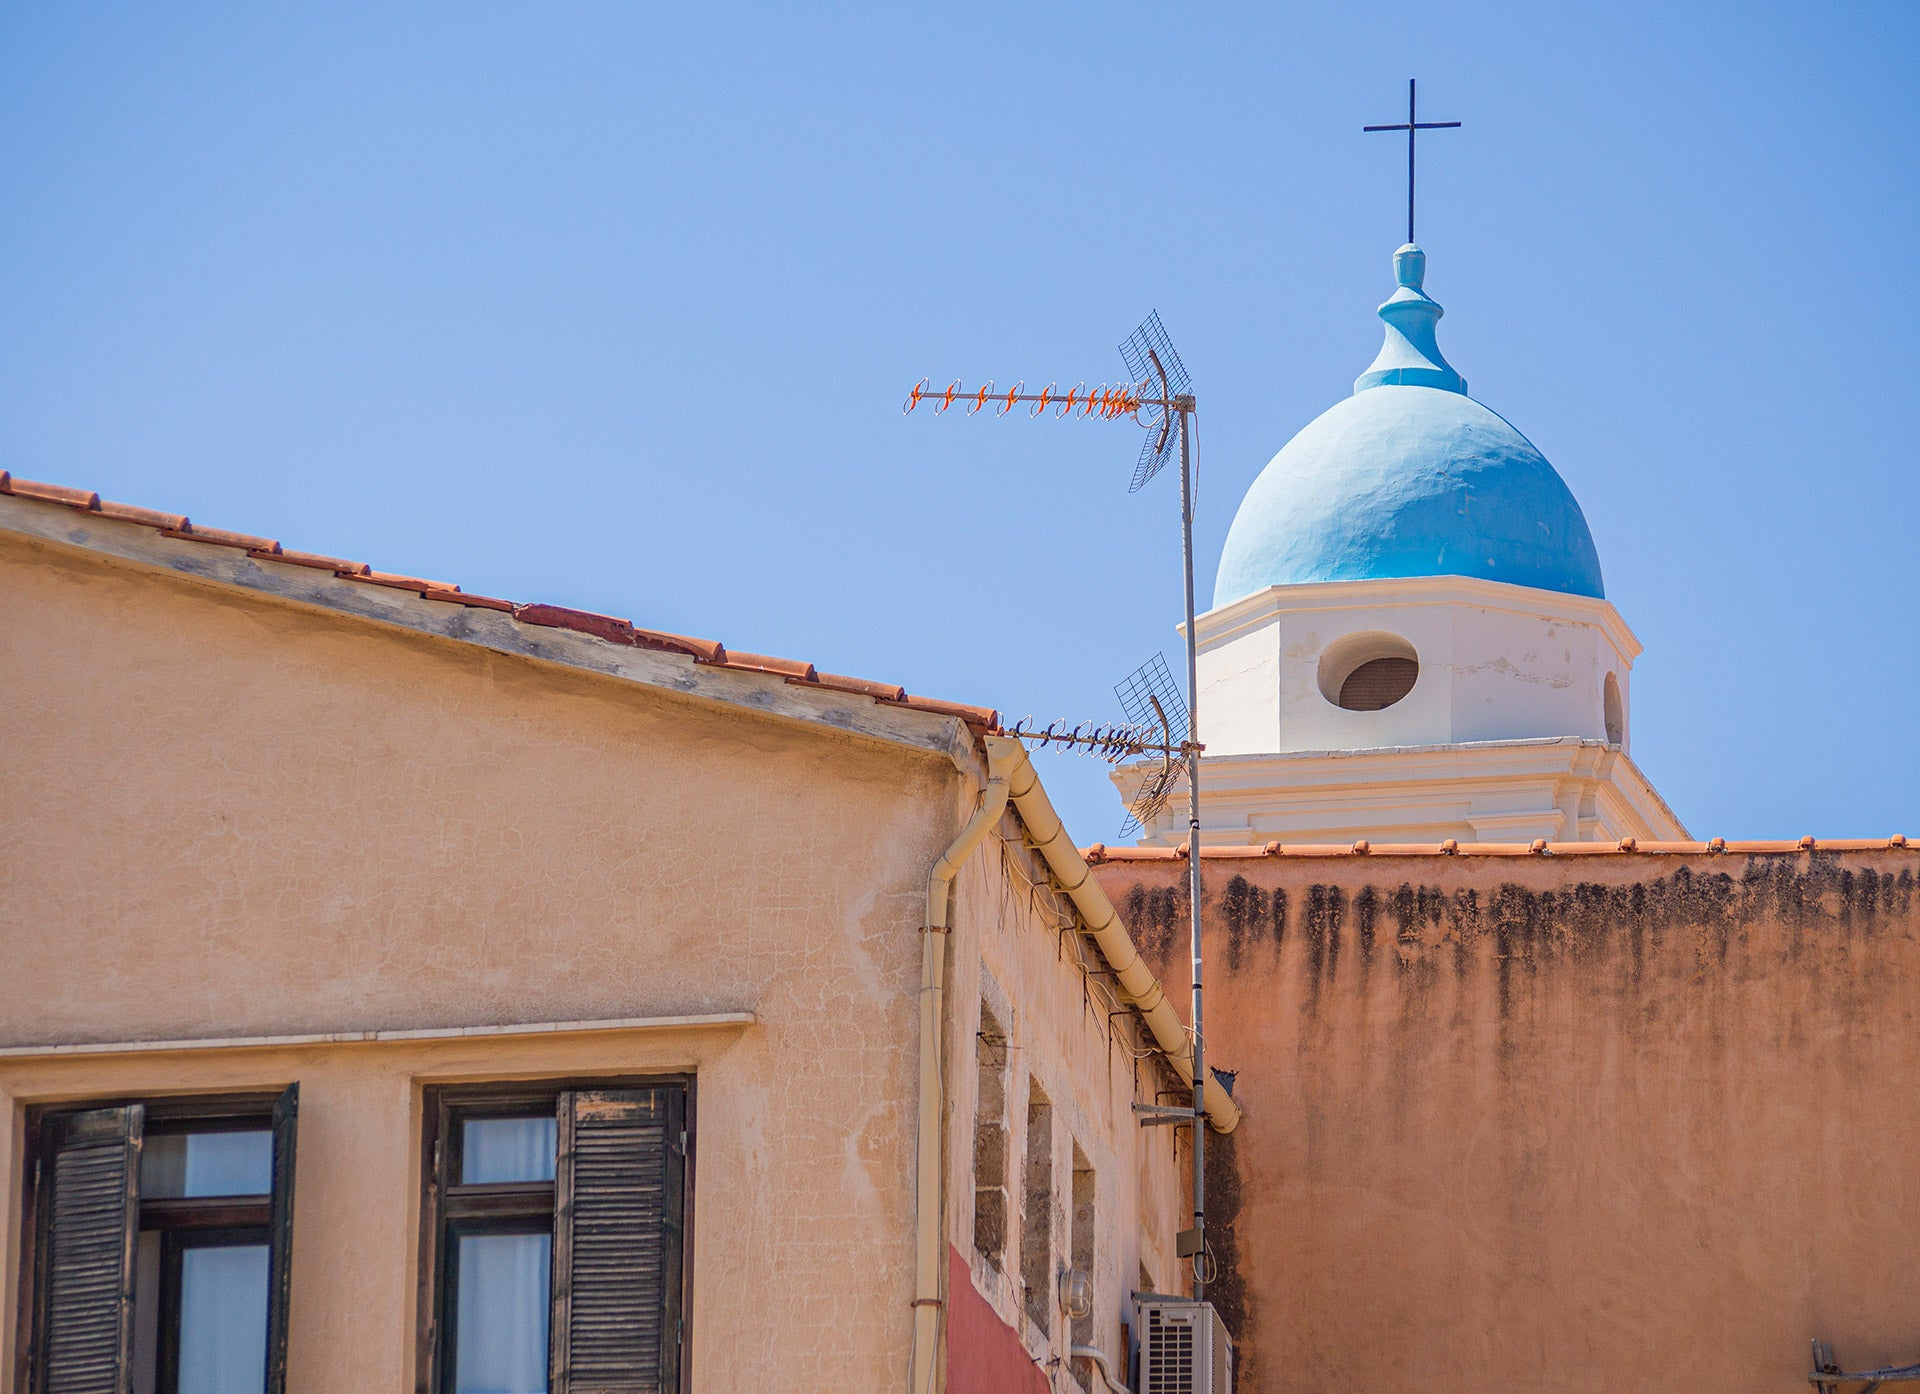 Chania Old Town Church Steeple Top, Crete